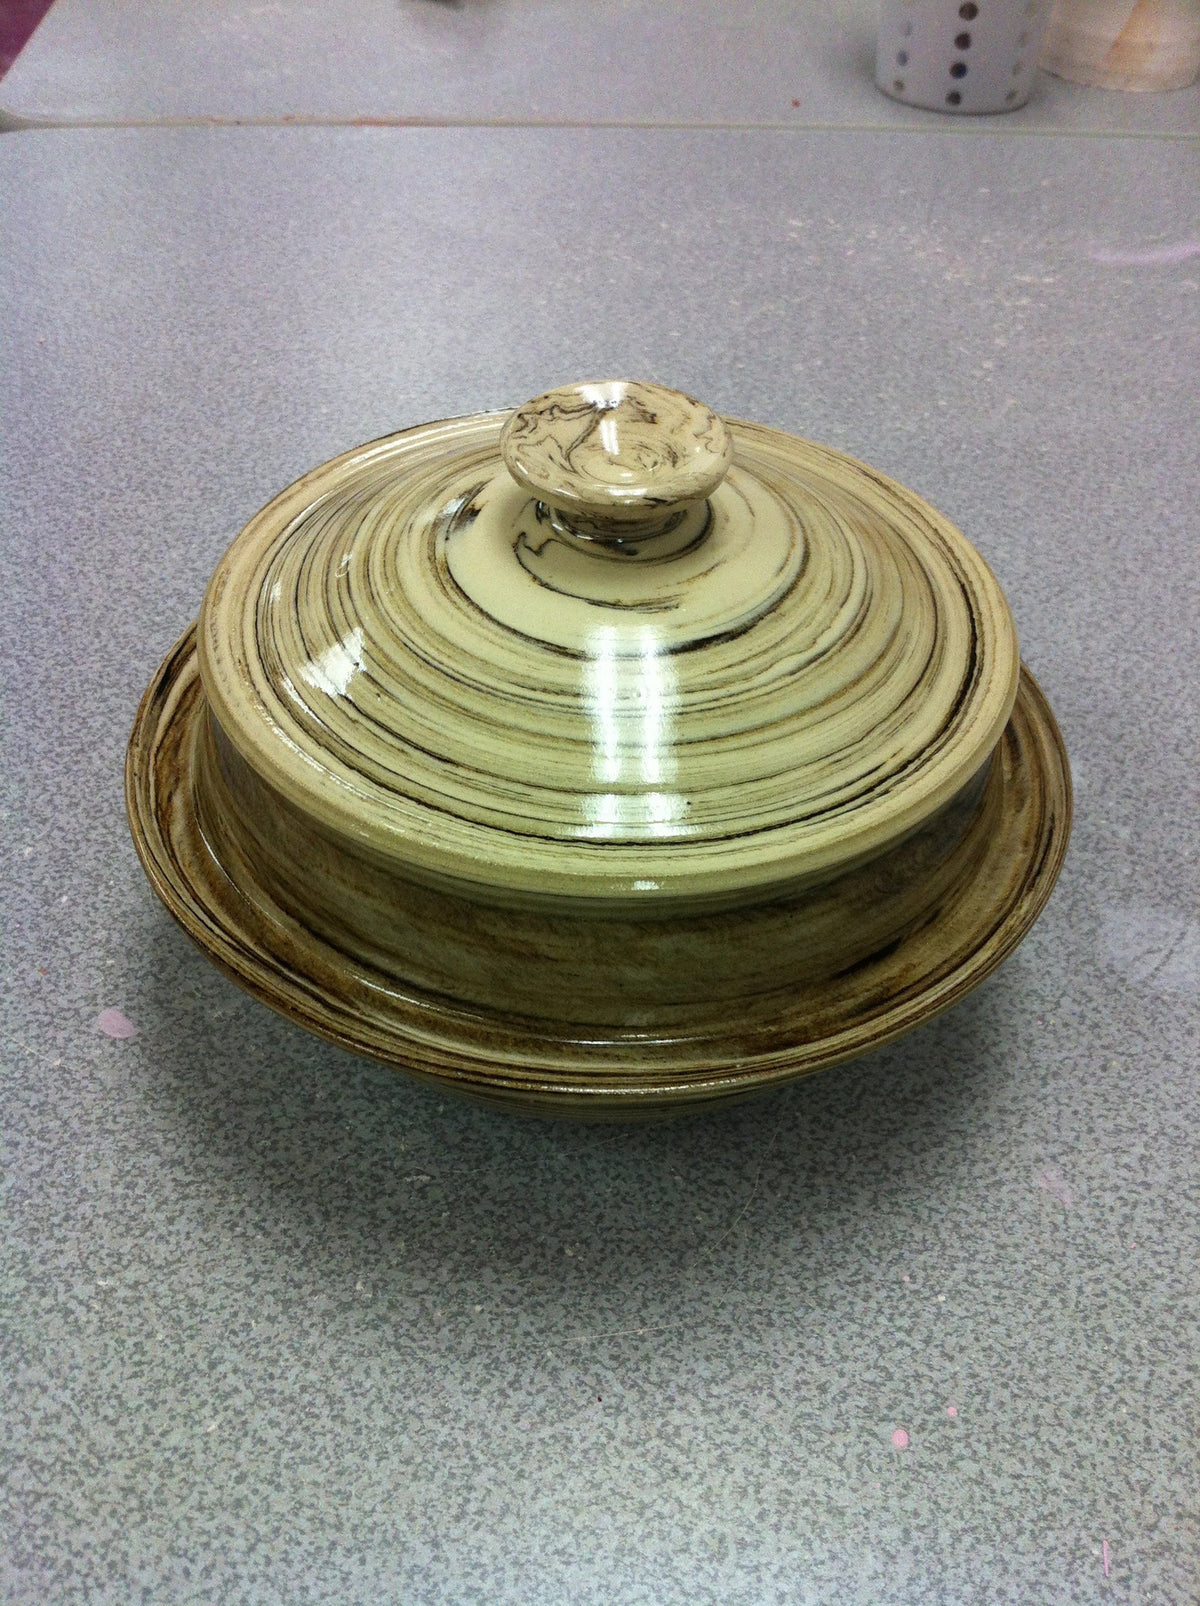 Lidded jar with marbling effect.